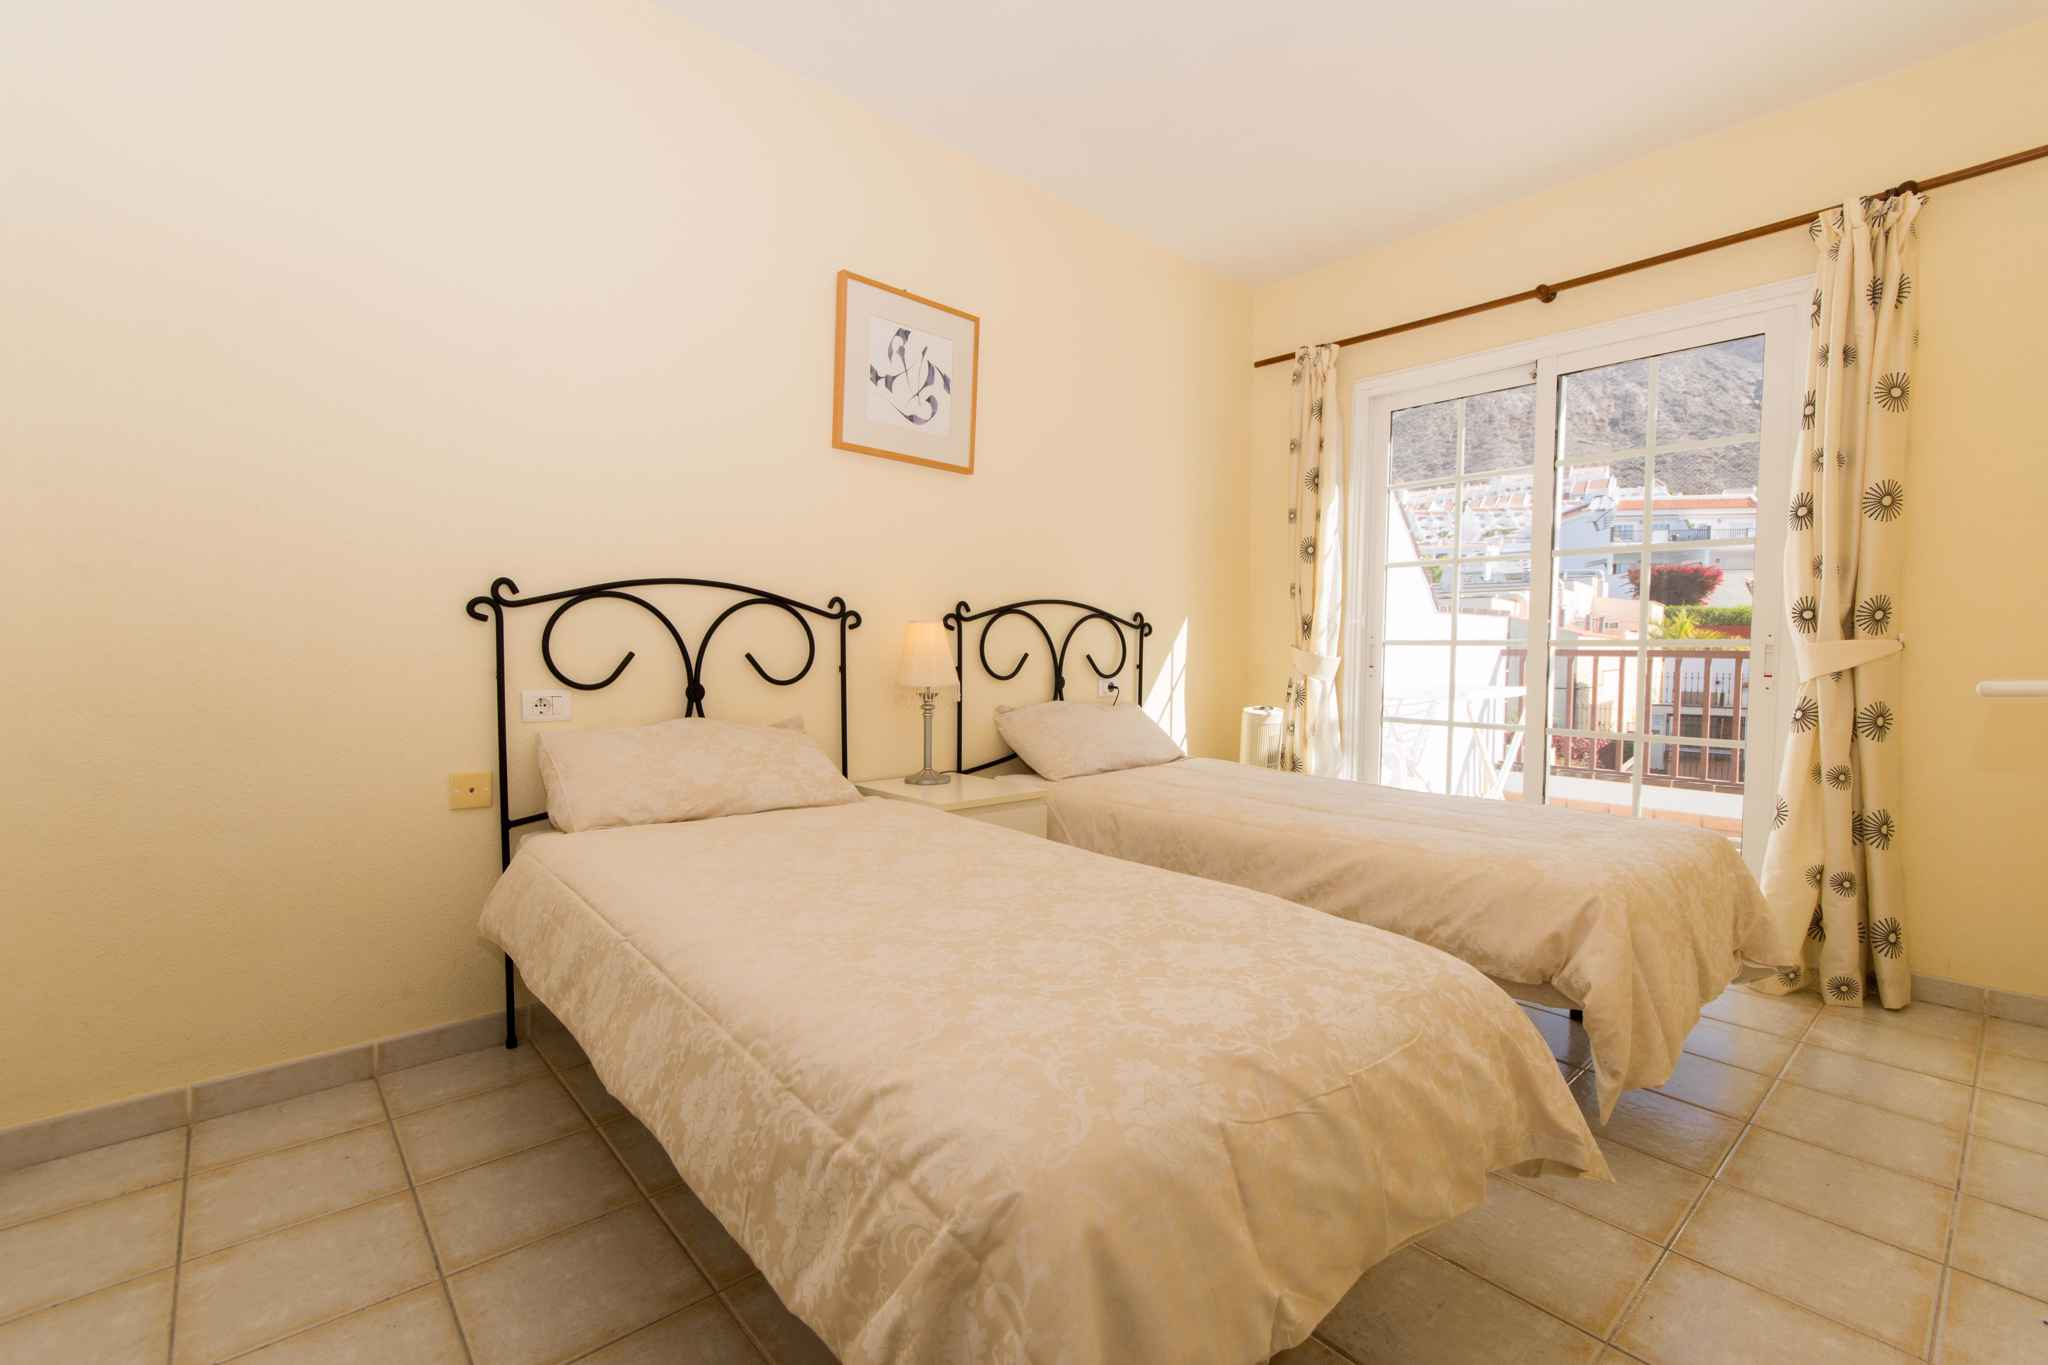 Holiday apartment mit Pool in Ferienanlage (2382979), Los Cristianos, Tenerife, Canary Islands, Spain, picture 19